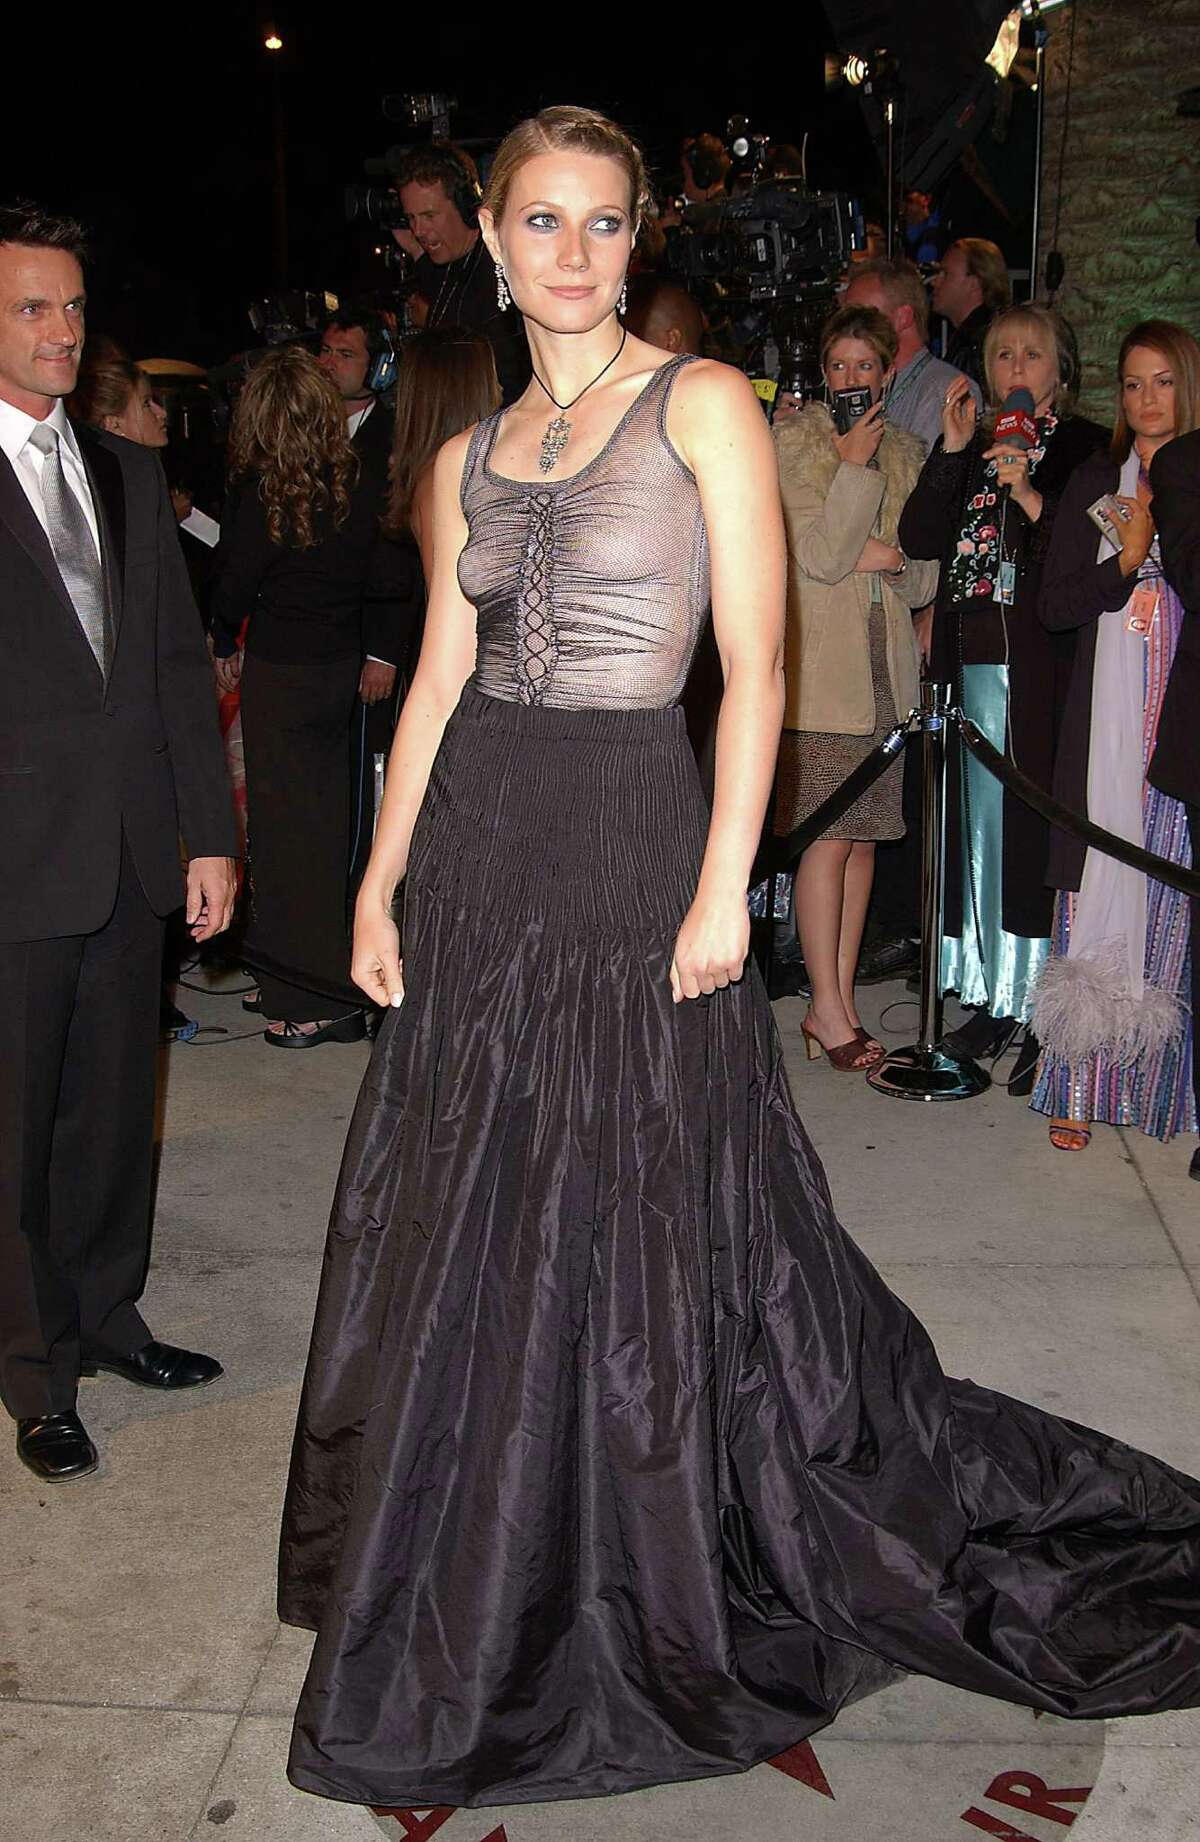 9. Gwyneth Paltrow, 2002 Hey girlfriend, I think a foundation garment would have been a good idea. But no! Paltrow arrived at the Oscars in a see-through Christian Lacroix Goth-inspired number that left her boobs lopsided.